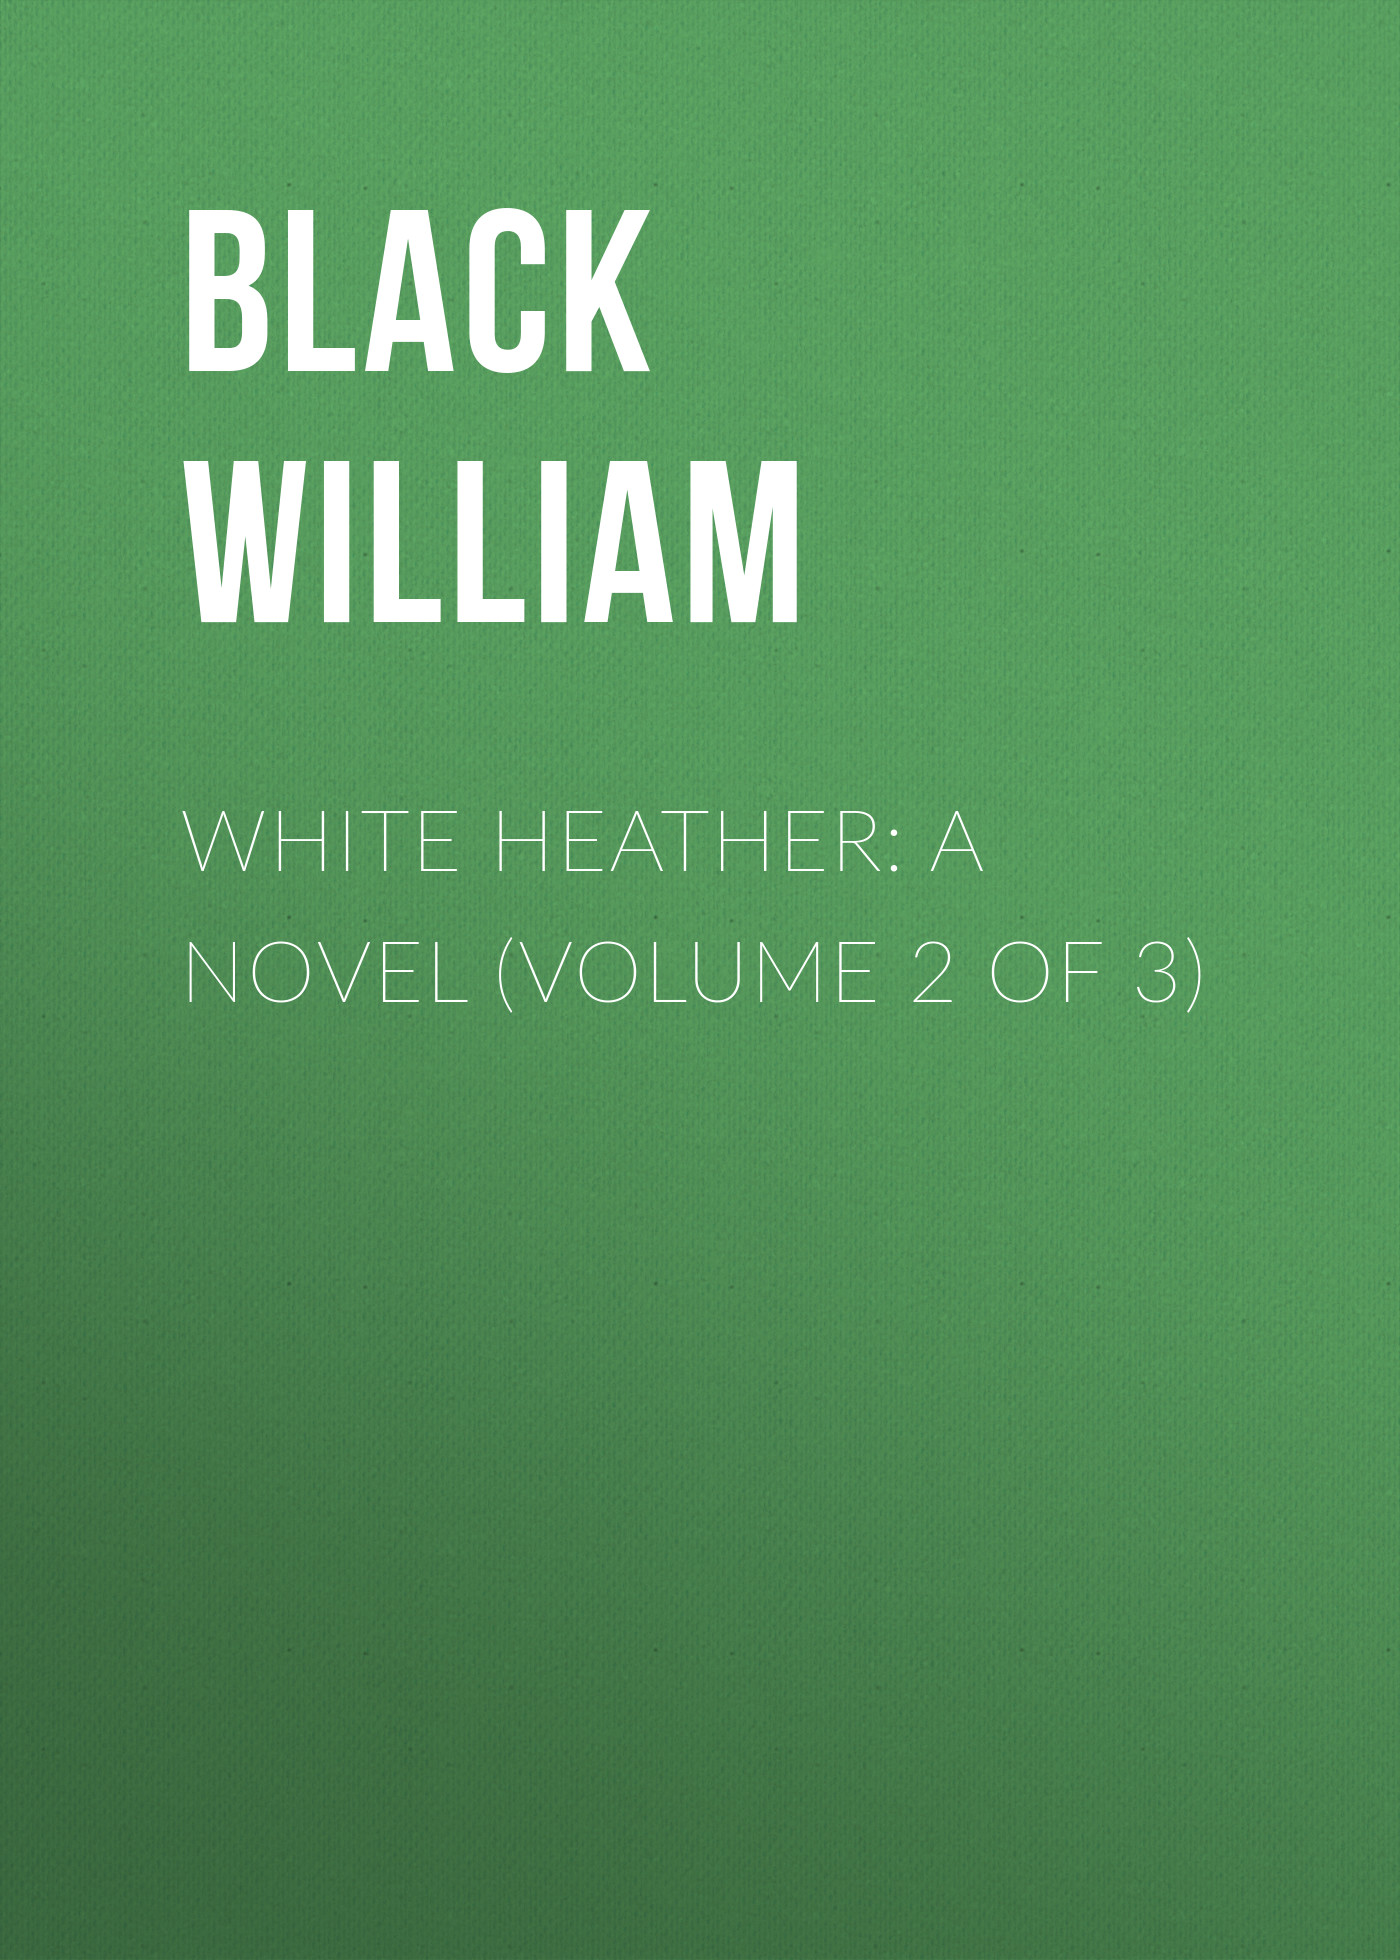 Black William White Heather: A Novel (Volume 2 of 3) white 3 heads nordic american laboratory white magic bottle contemporary adornment the modern novel lamp 2017